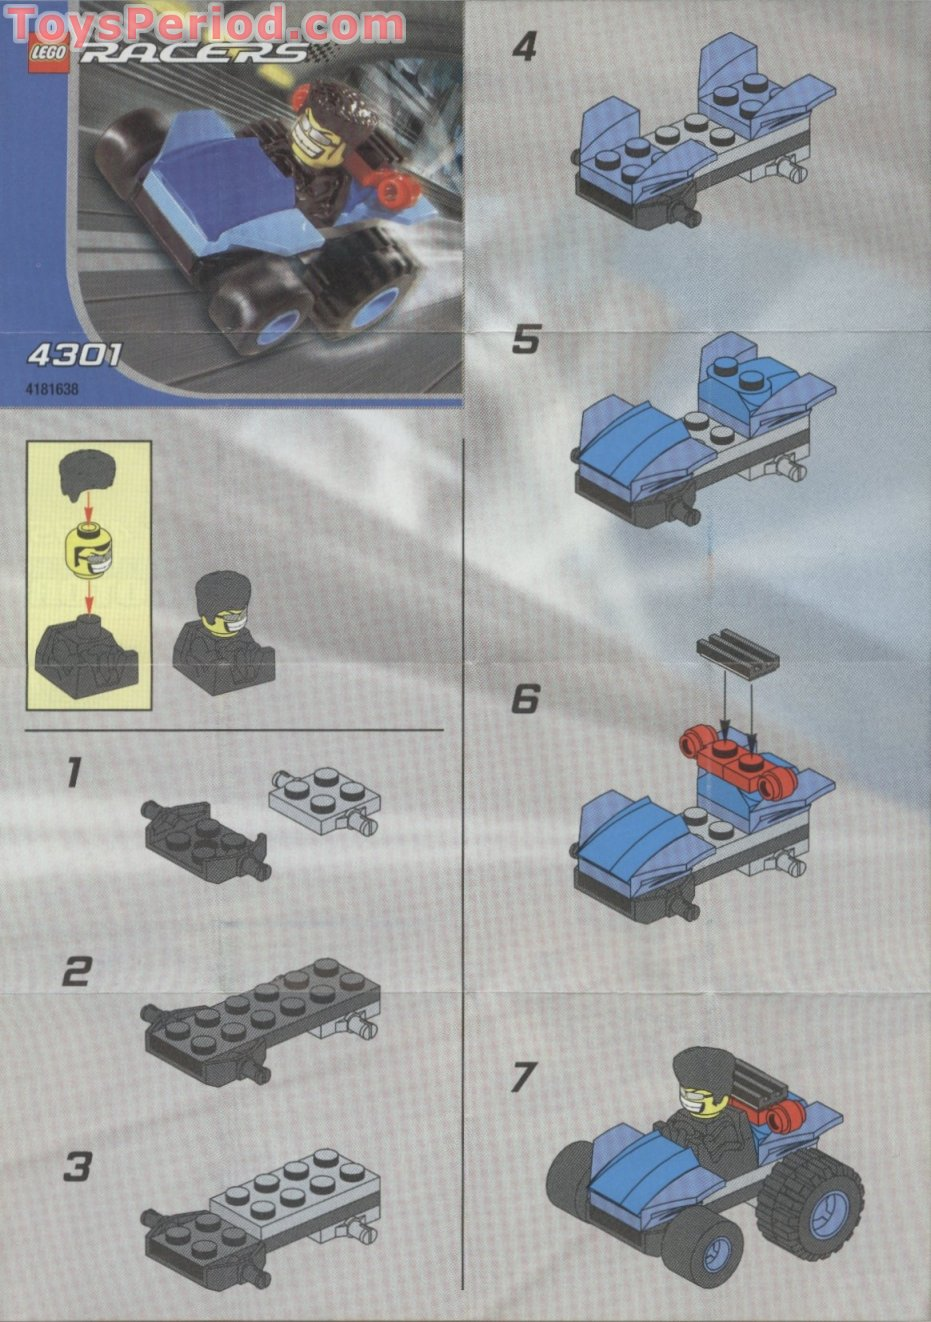 Lego 4301 Blue Racer Set Parts Inventory And Instructions